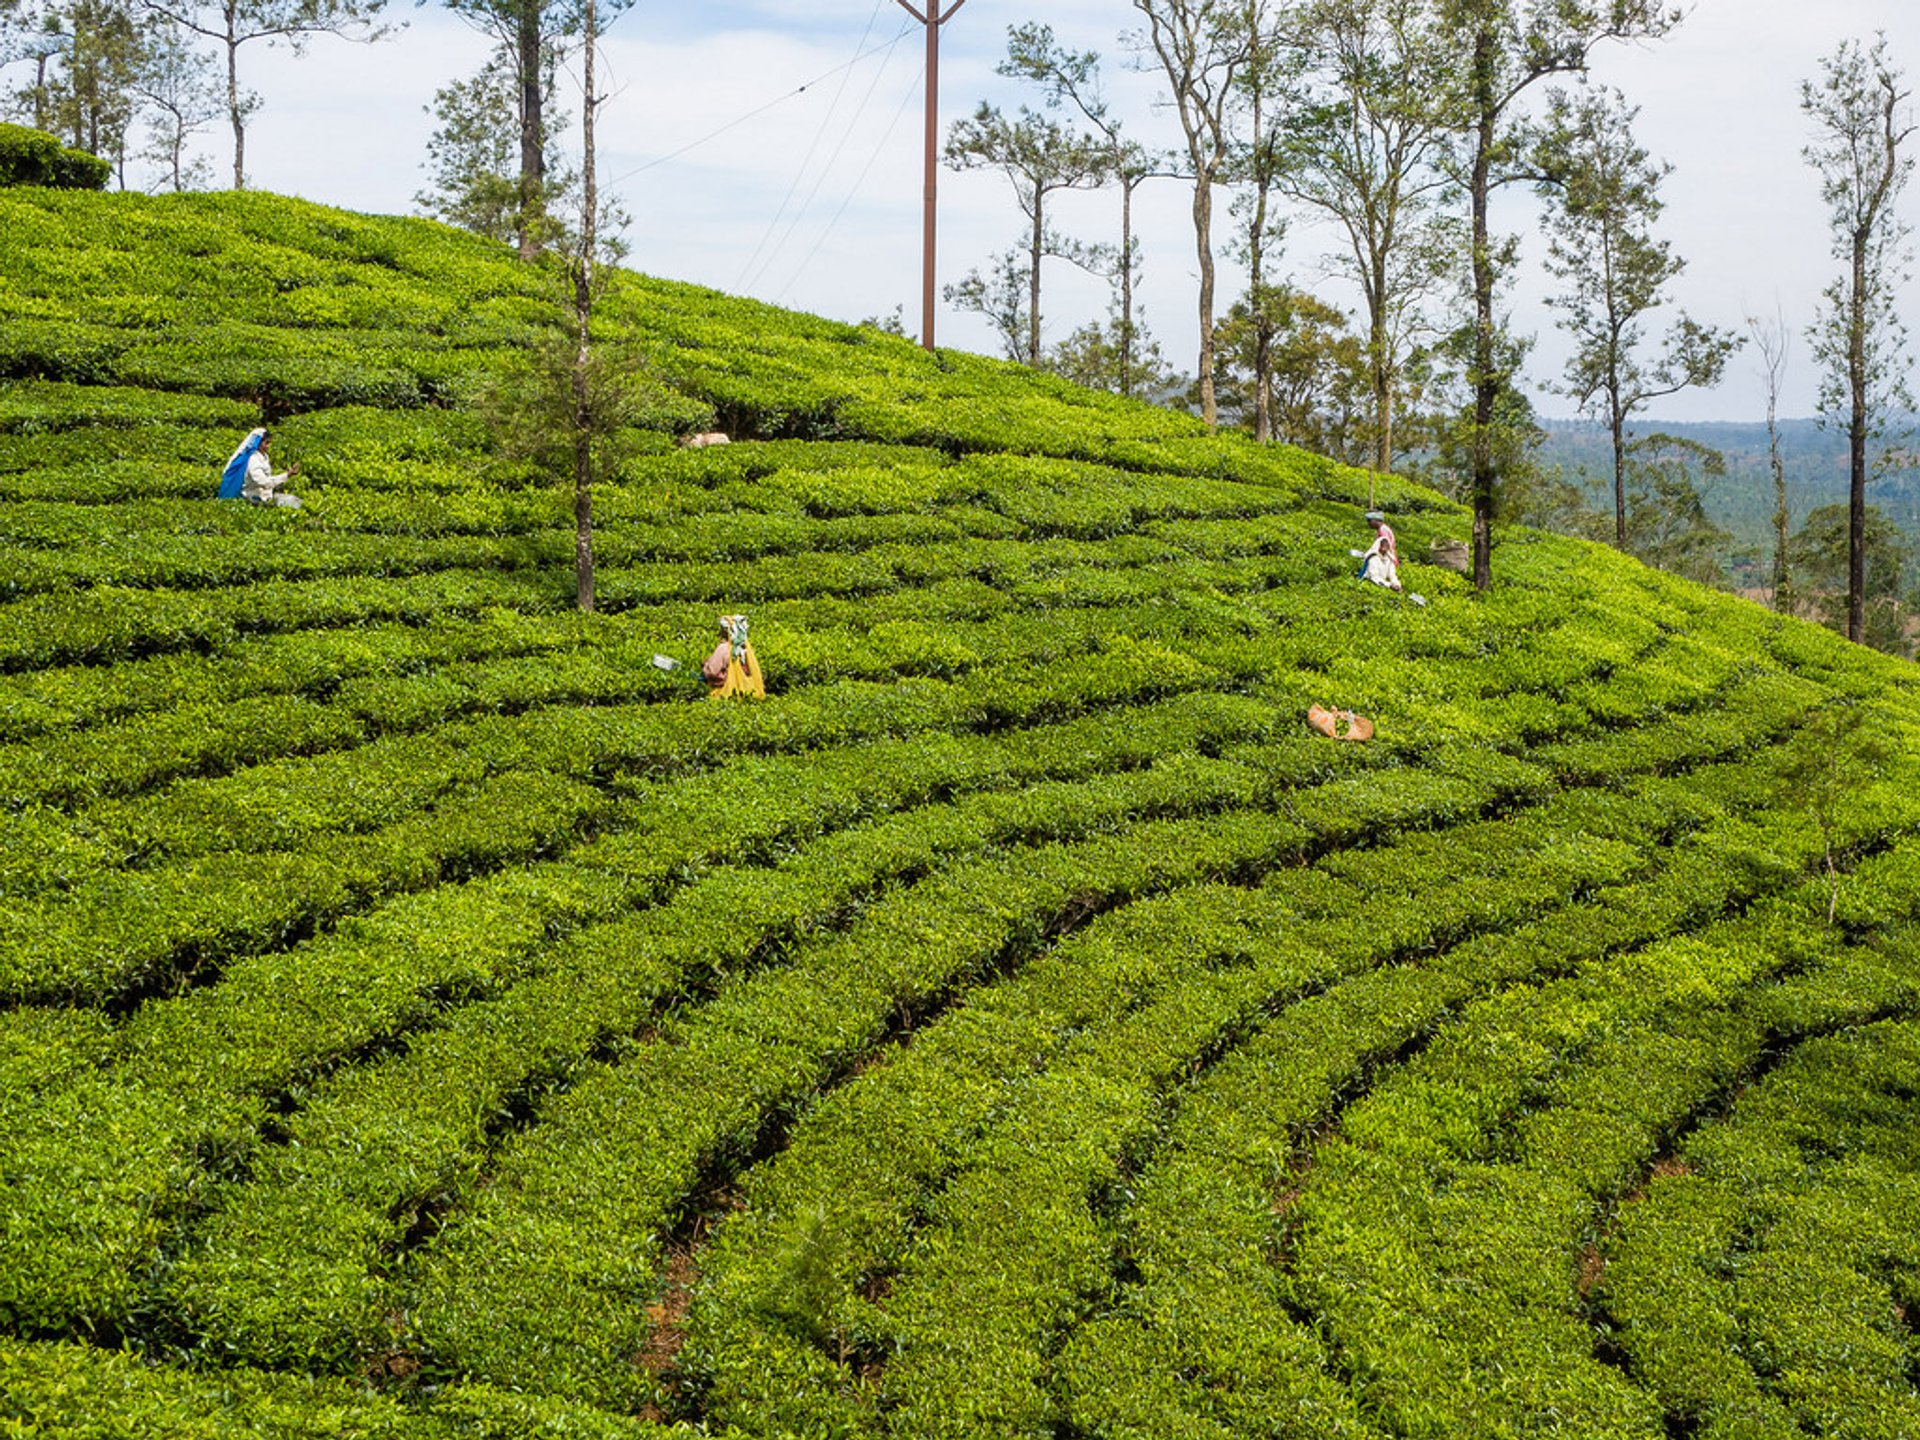 Tea Harvest in India 2019 - Best Time